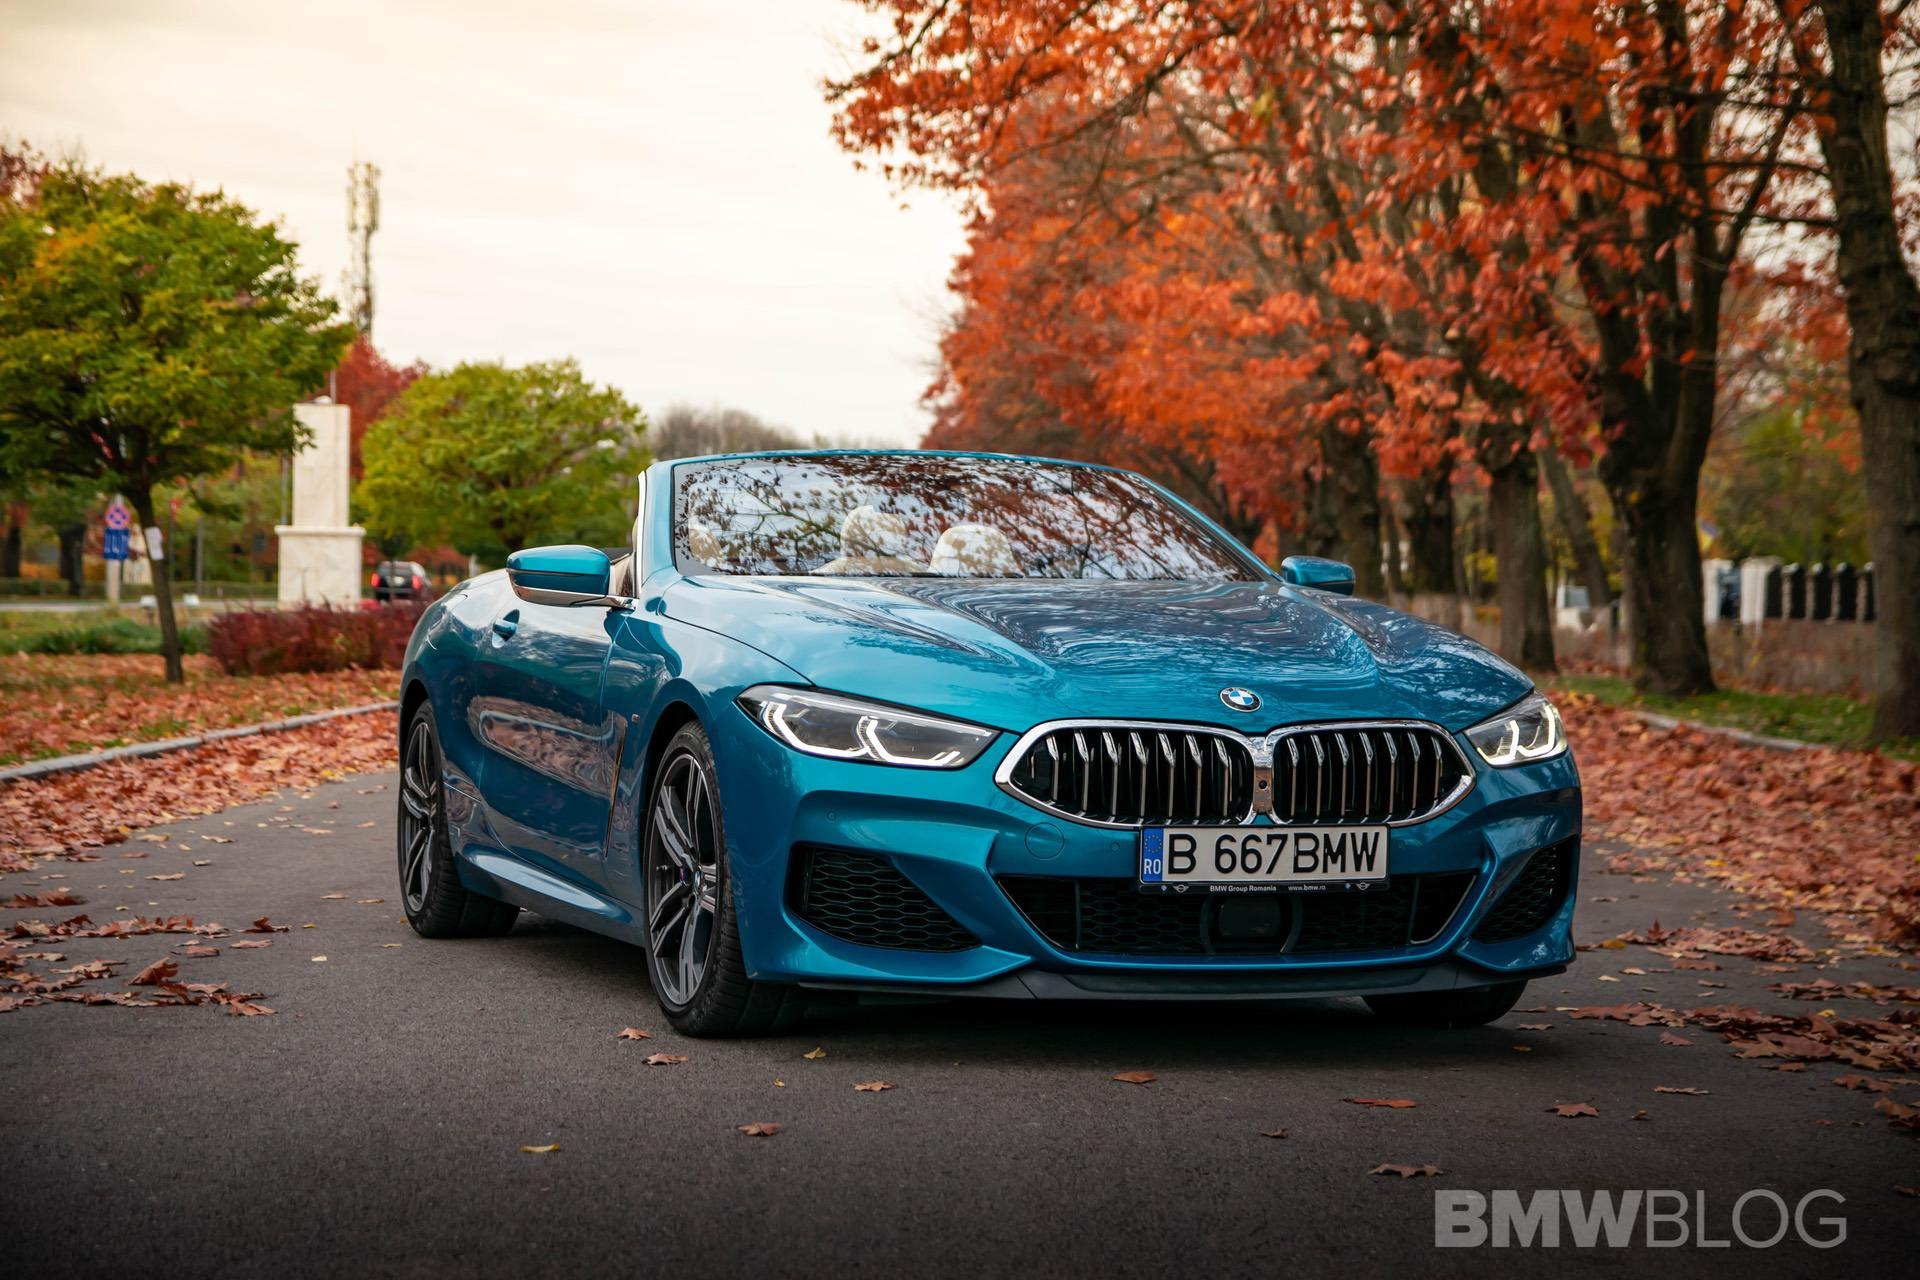 2020 BMW M850i Convertible atlantis blue44